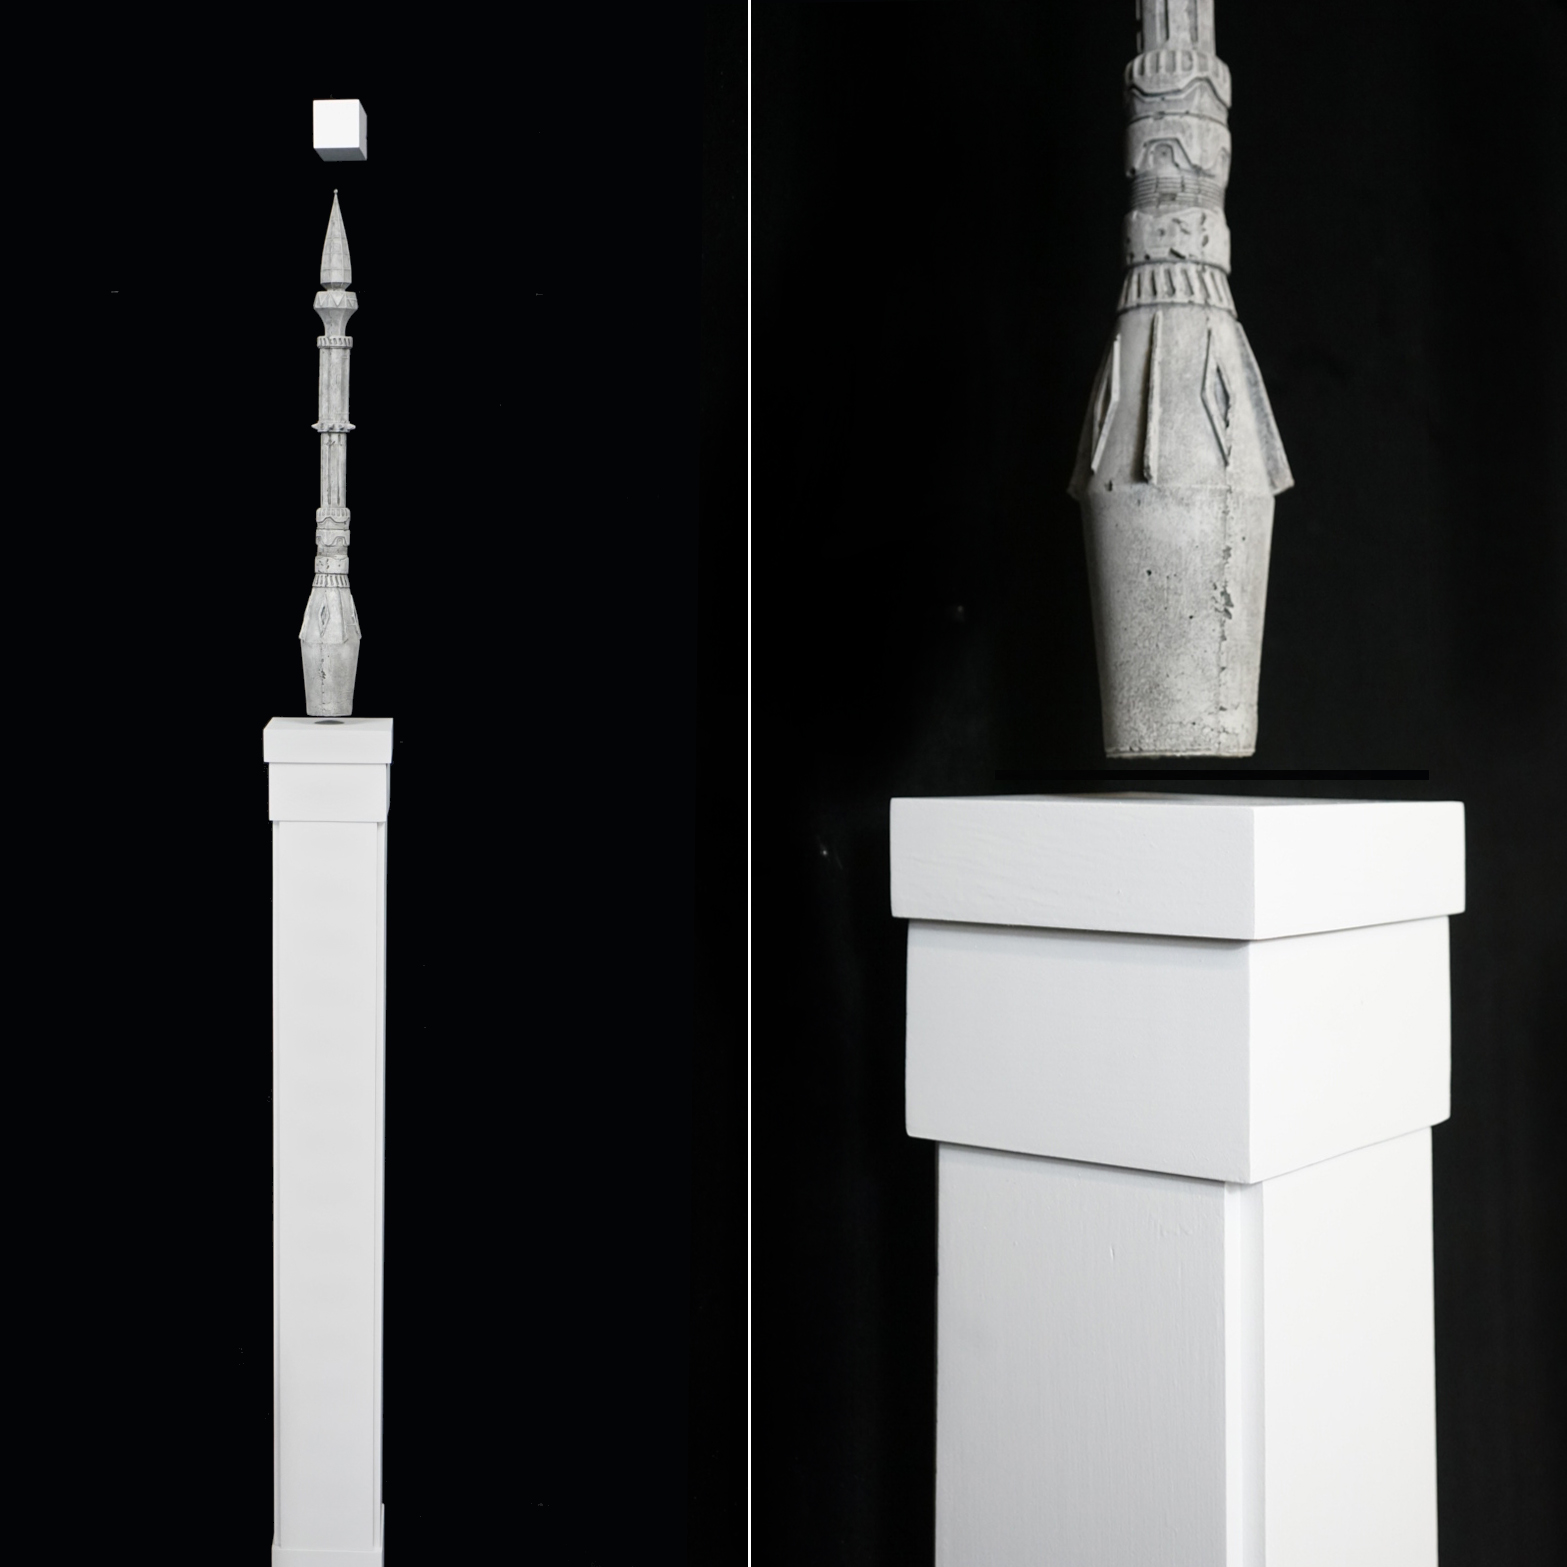 Hovering Minaret  2019. High Density Foam, Electromagnets, Wood. Edition of 3.